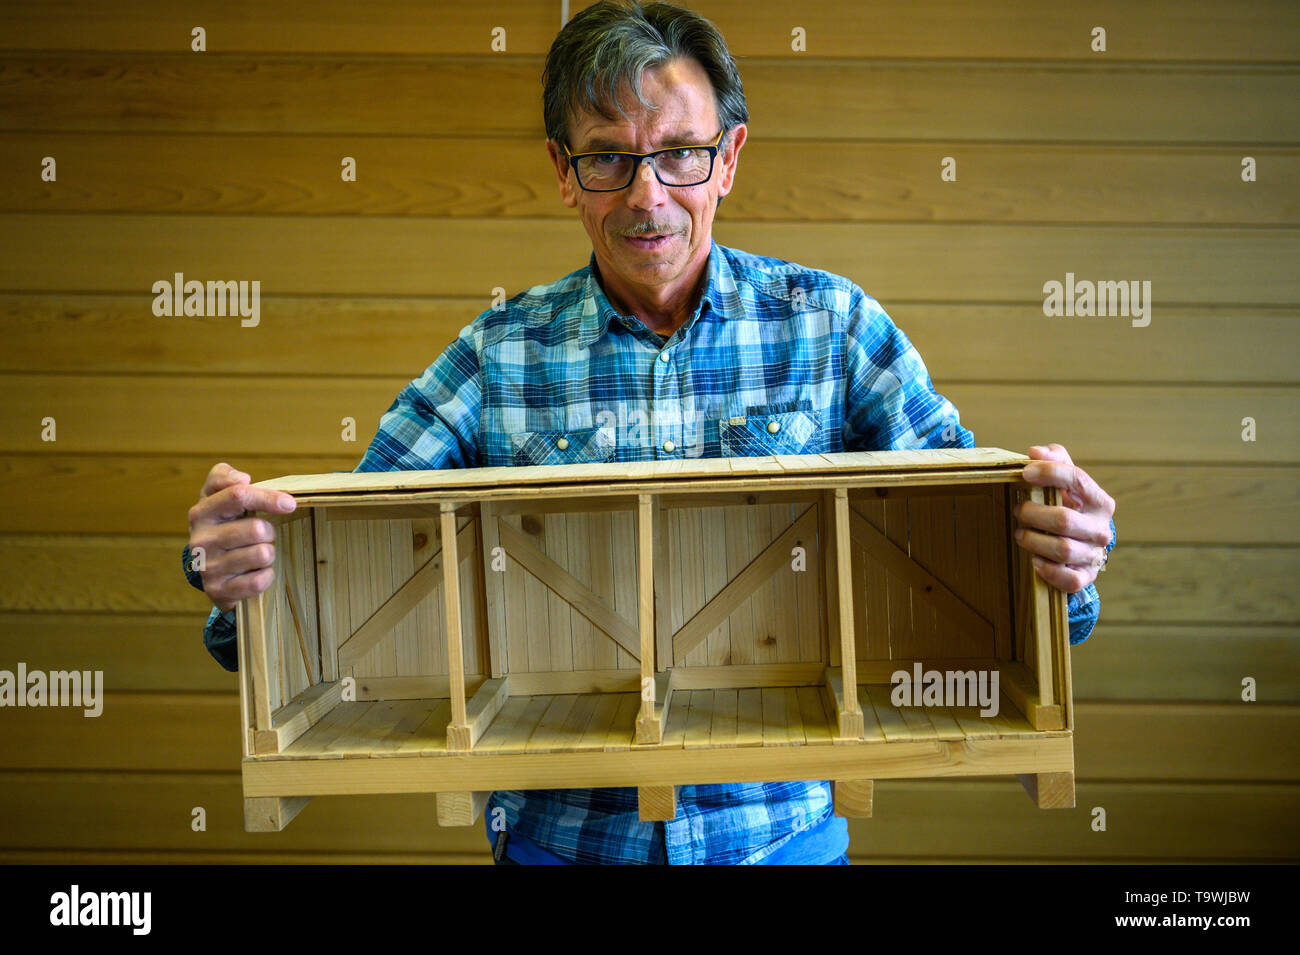 Bremen, Germany. 17th May, 2019. Markus Neumann, wood technician at the company 'Carl Gluud', holds a wooden model box in his hands, which he designed himself. (to dpa 'Too big, too heavy? resourceful technicians get everything on the ship') Credit: Mohssen Assanimoghaddam/dpa/Alamy Live News - Stock Image